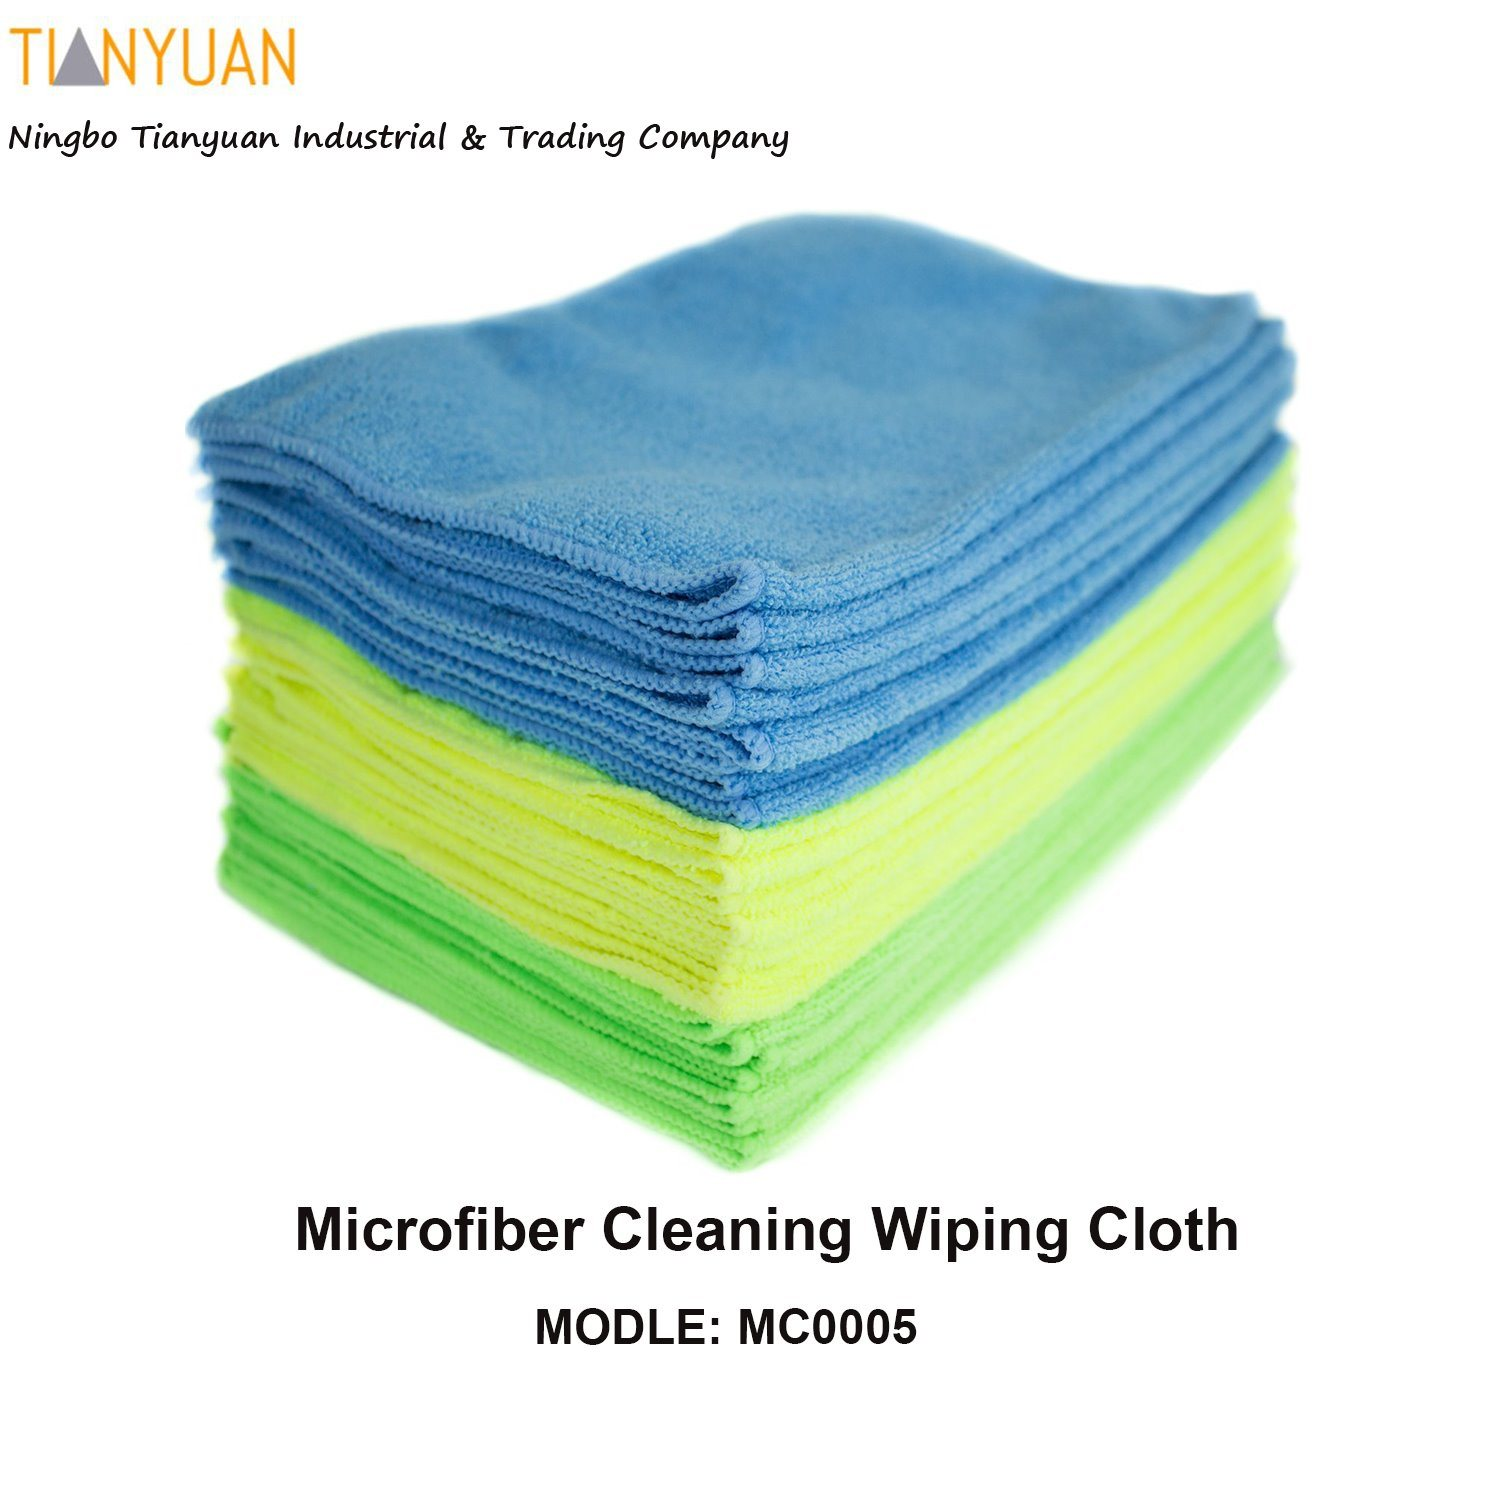 Logo Printed Promotional Microfiber Cleaning Wiping Cloth